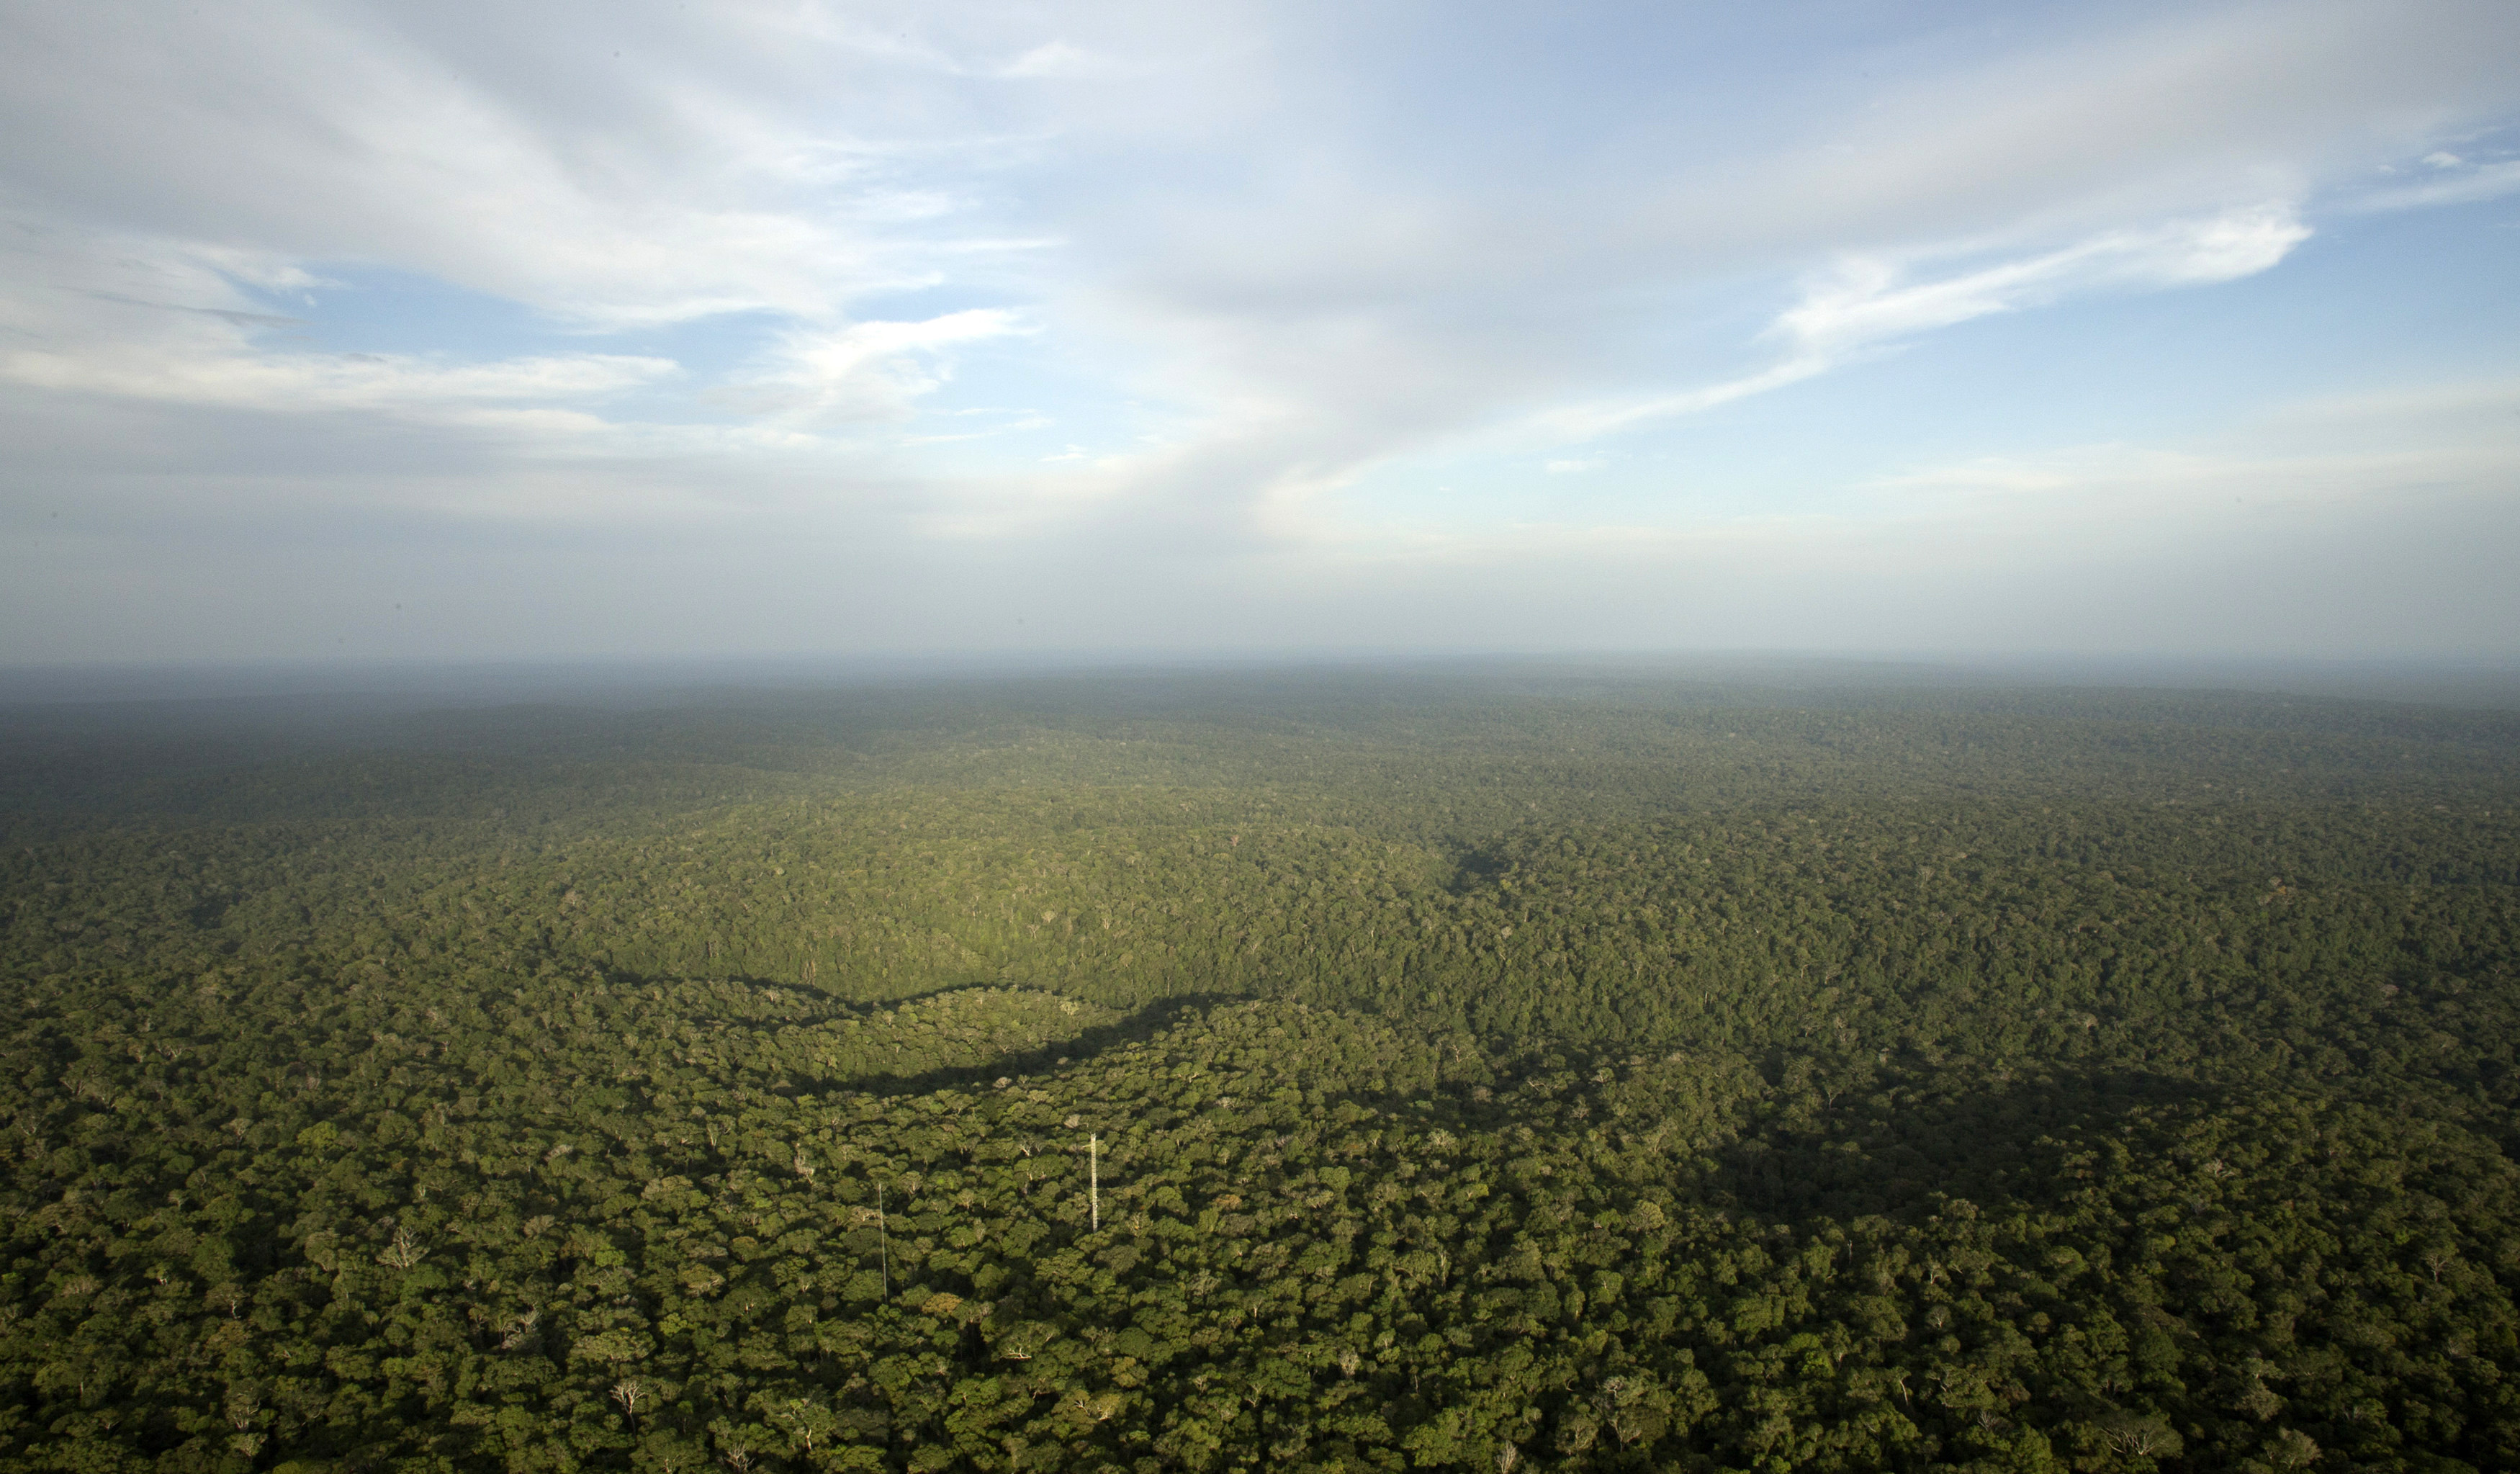 A view is seen from the Amazon Tall Tower Observatory (ATTO) in Sao Sebastiao do Uatuma in the middle of the Amazon forest in Amazonas state January 10, 2015. The Amazon Tall Tower Observatory is a project of Brazil's National Institute of Amazonian Research and Germany's Max Planck Institute and will be equipped with high-tech instruments and an observatory to monitor relationships between the jungle and the atmosphere from next July. According to the institutes, ATTO will gather data on heat, water, carbon gas, winds, cloud formation and weather patterns. Picture taken on January 10, 2015. REUTERS/Bruno Kelly (BRAZIL - Tags: ENVIRONMENT SCIENCE TECHNOLOGY) - GM1EB1D1UF701